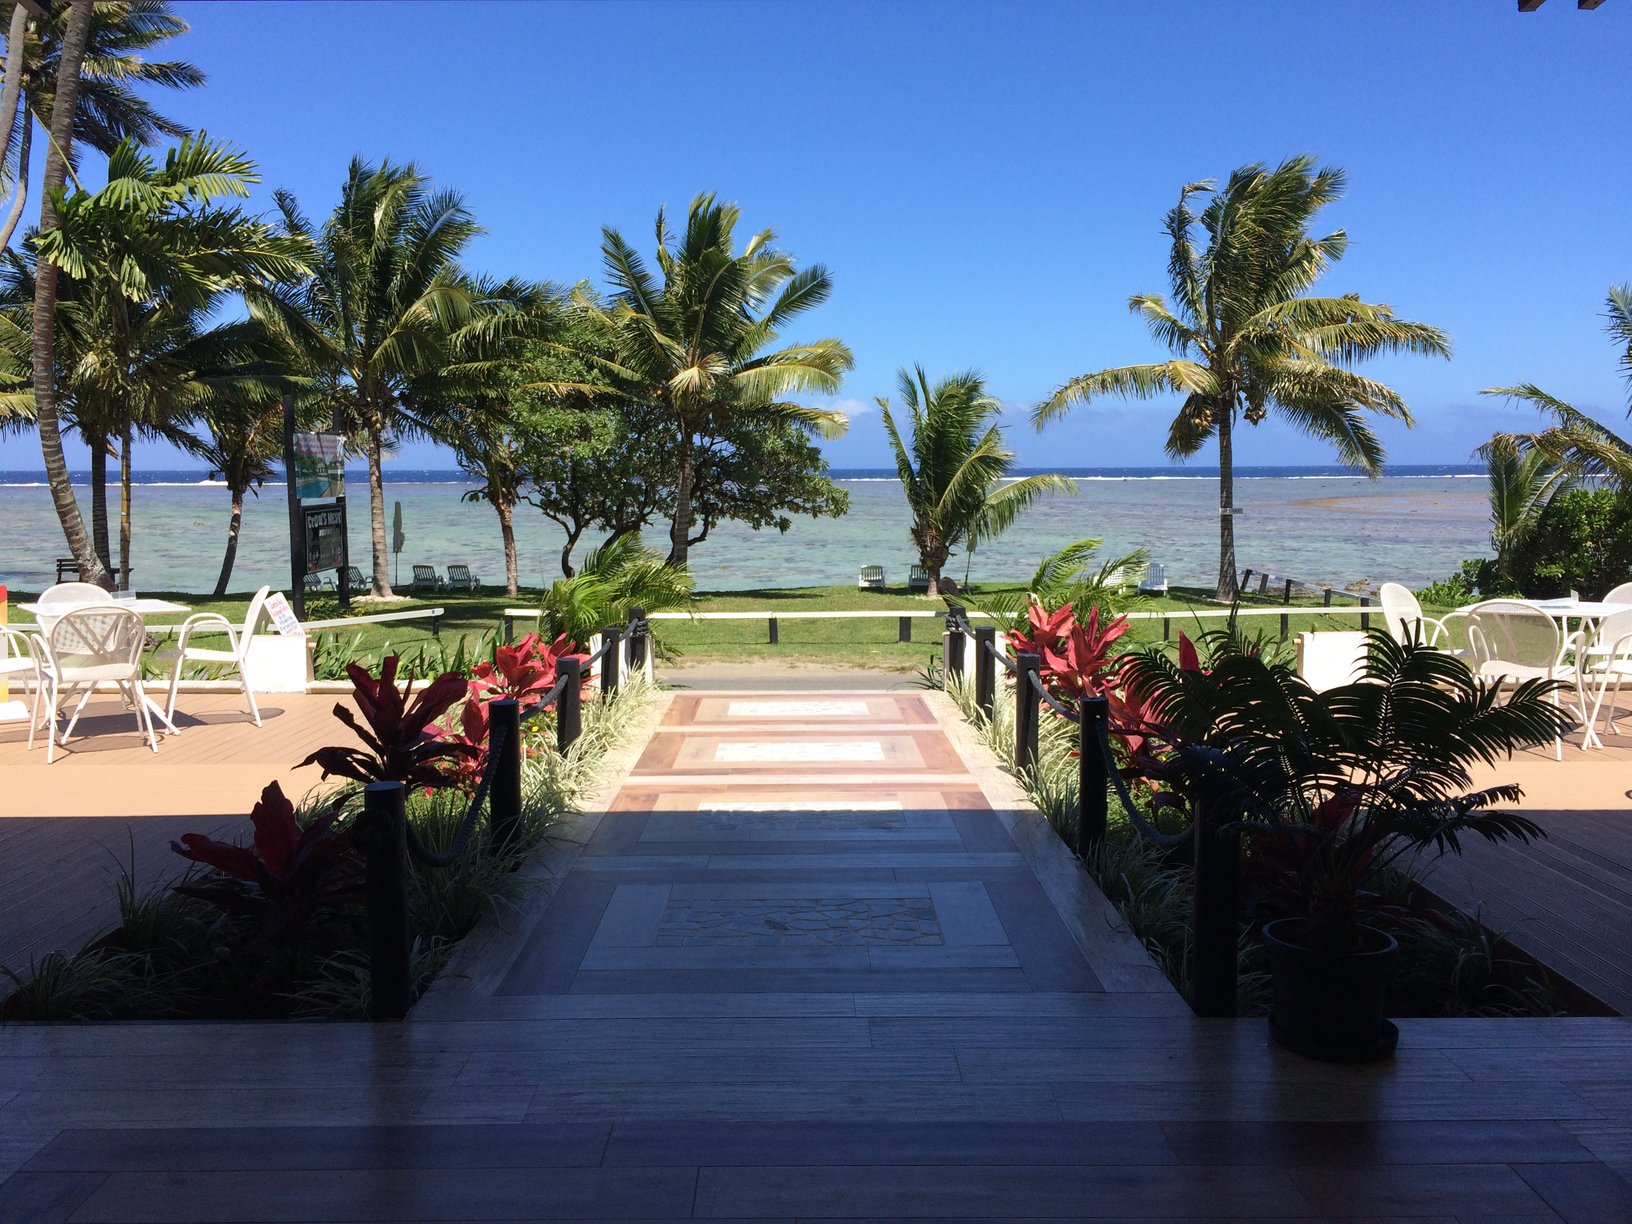 The Crow's Nest Resort: A Hidden Gem in the Coral Coast on Fiji's Sunset Strip